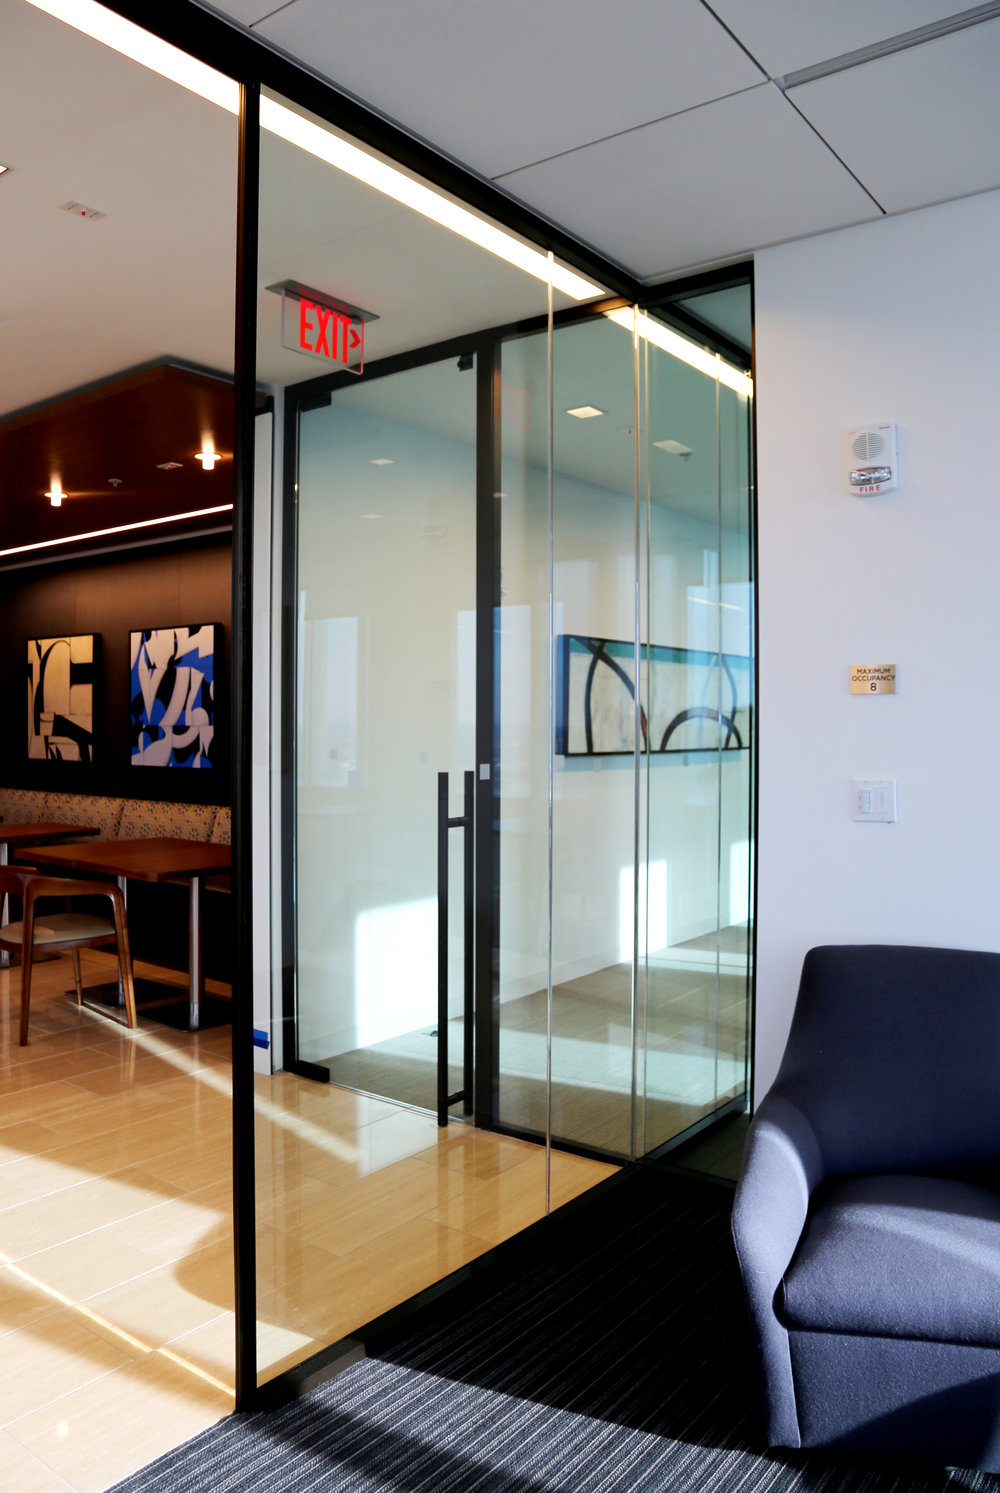 Modernus Butt Glazed Glass Huddle Room Wall - Spaceworks AI.jpg